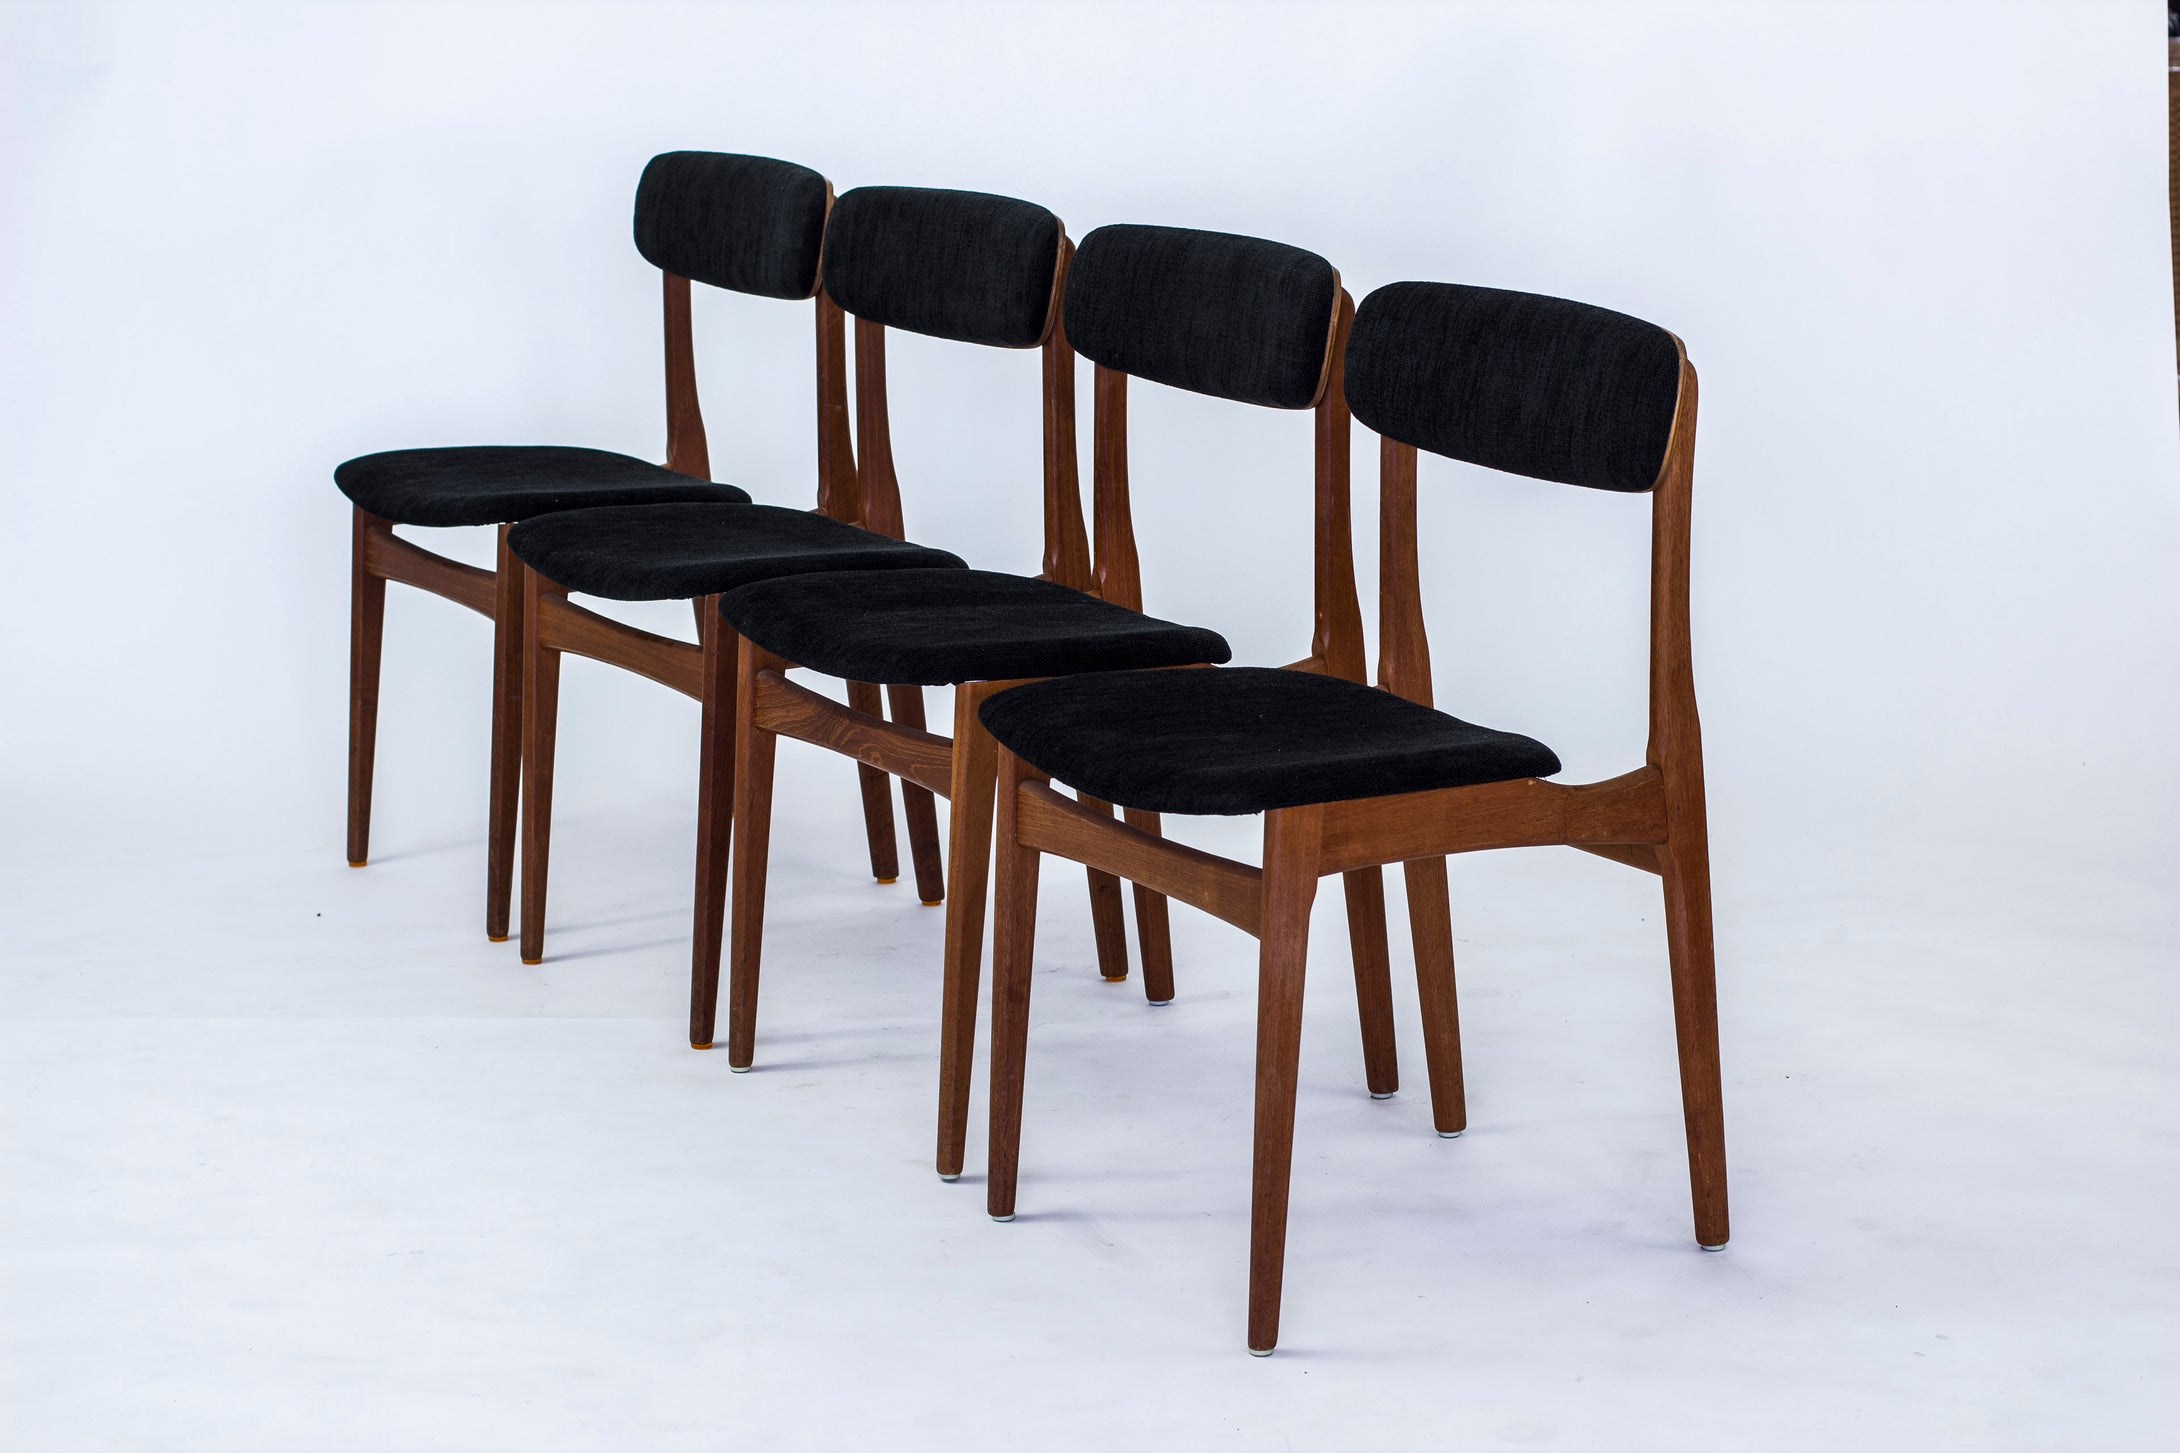 Fyra danska teakstolar med nytt tyg, 1950-tal. H: 78cm, B: 44cm, D: 48cm. Four Danish teak chairs with new fabric, 1950's. H: 78cm/30,7